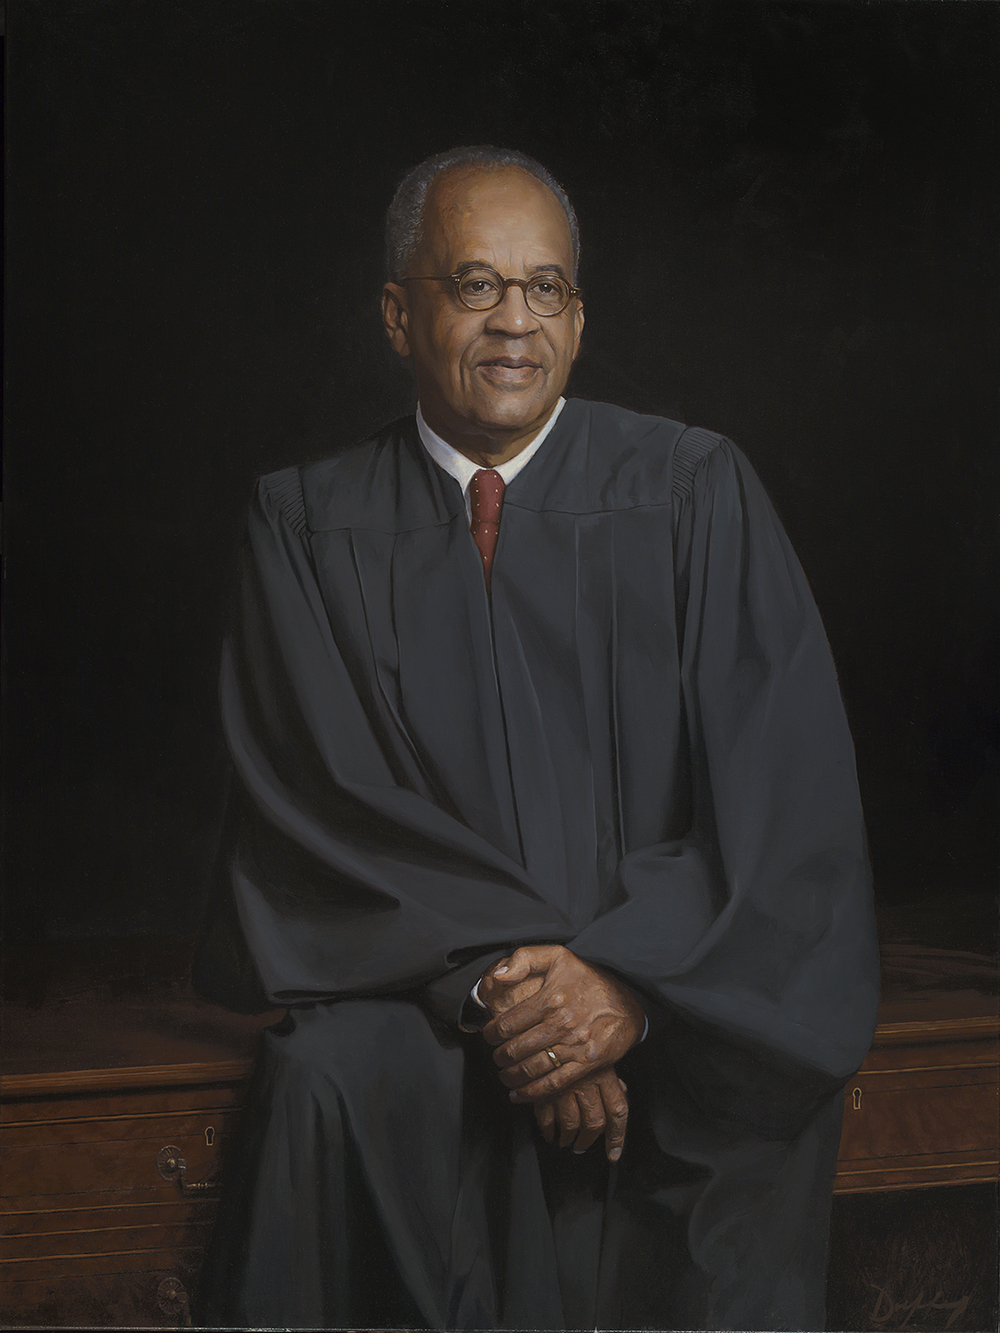 Barrington Daniel Parker Jr, Judge, United States Court of Appeals